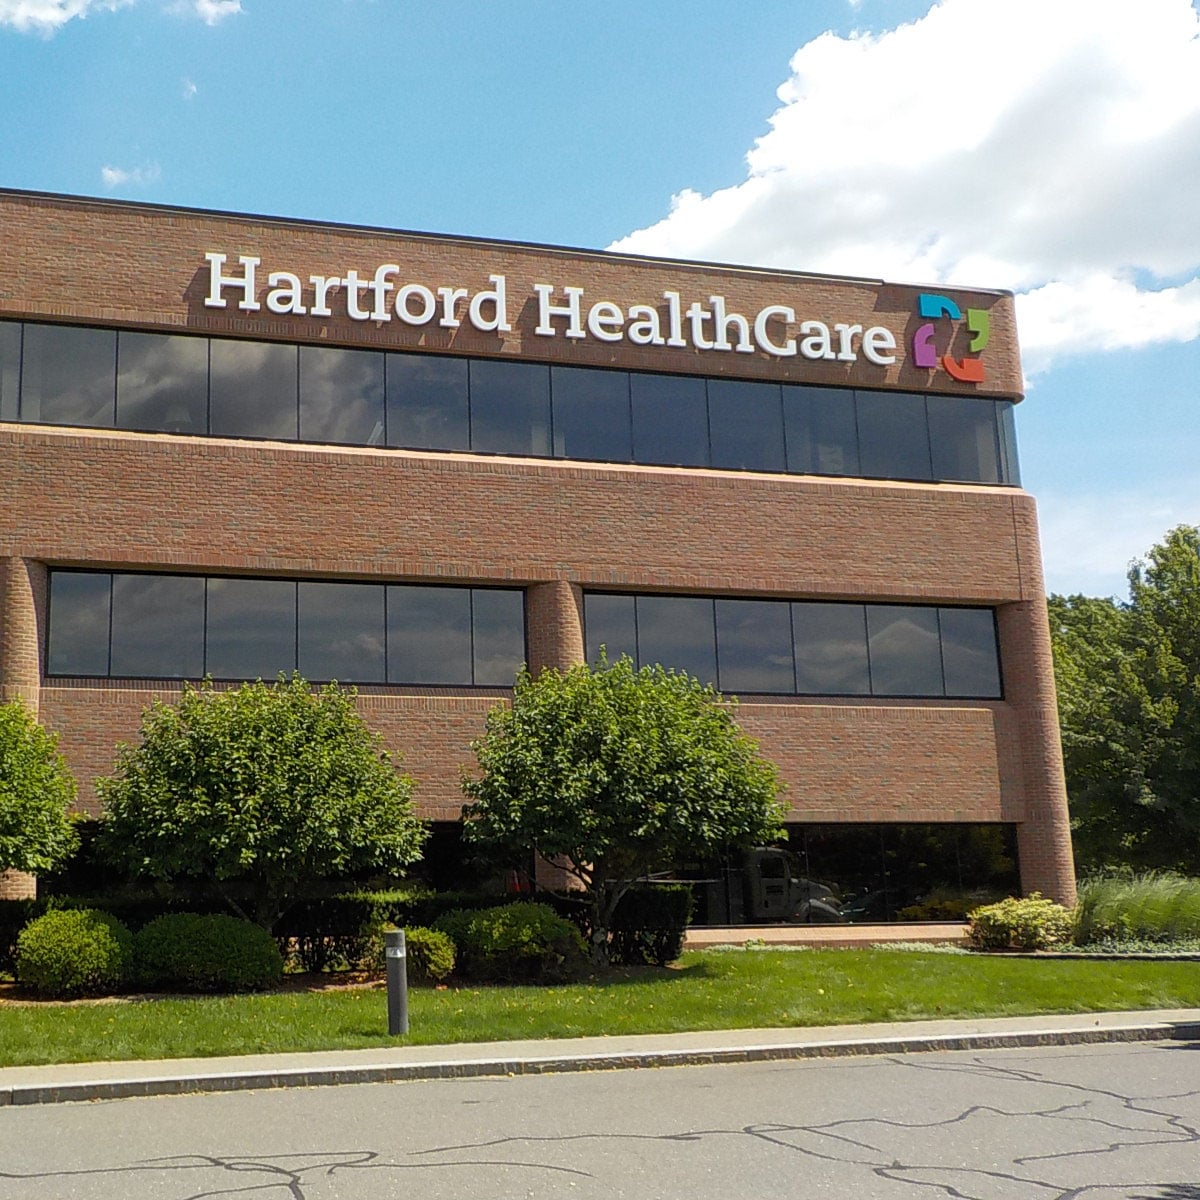 Hartford HealthCare Building